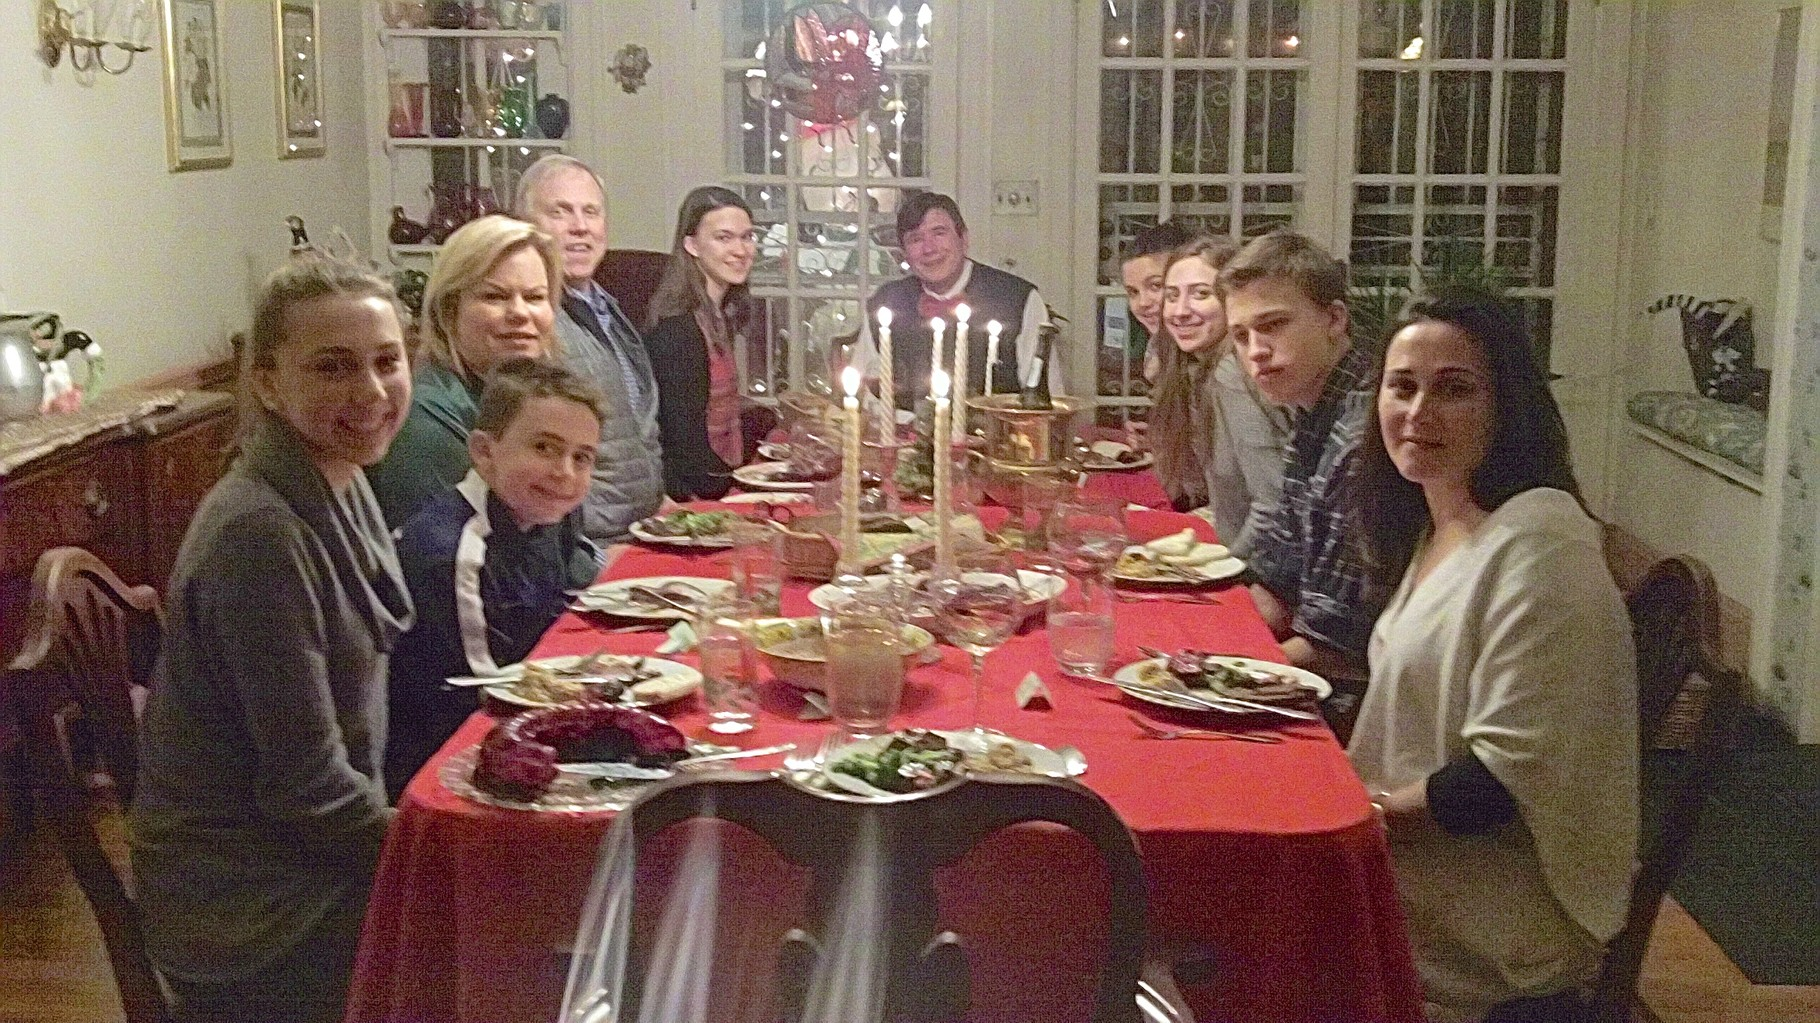 Gabby, Stuart III, Celeste, Stuart Jr., Ellie, John, Kate, Emma, Jack, Allie at dinner, NYC